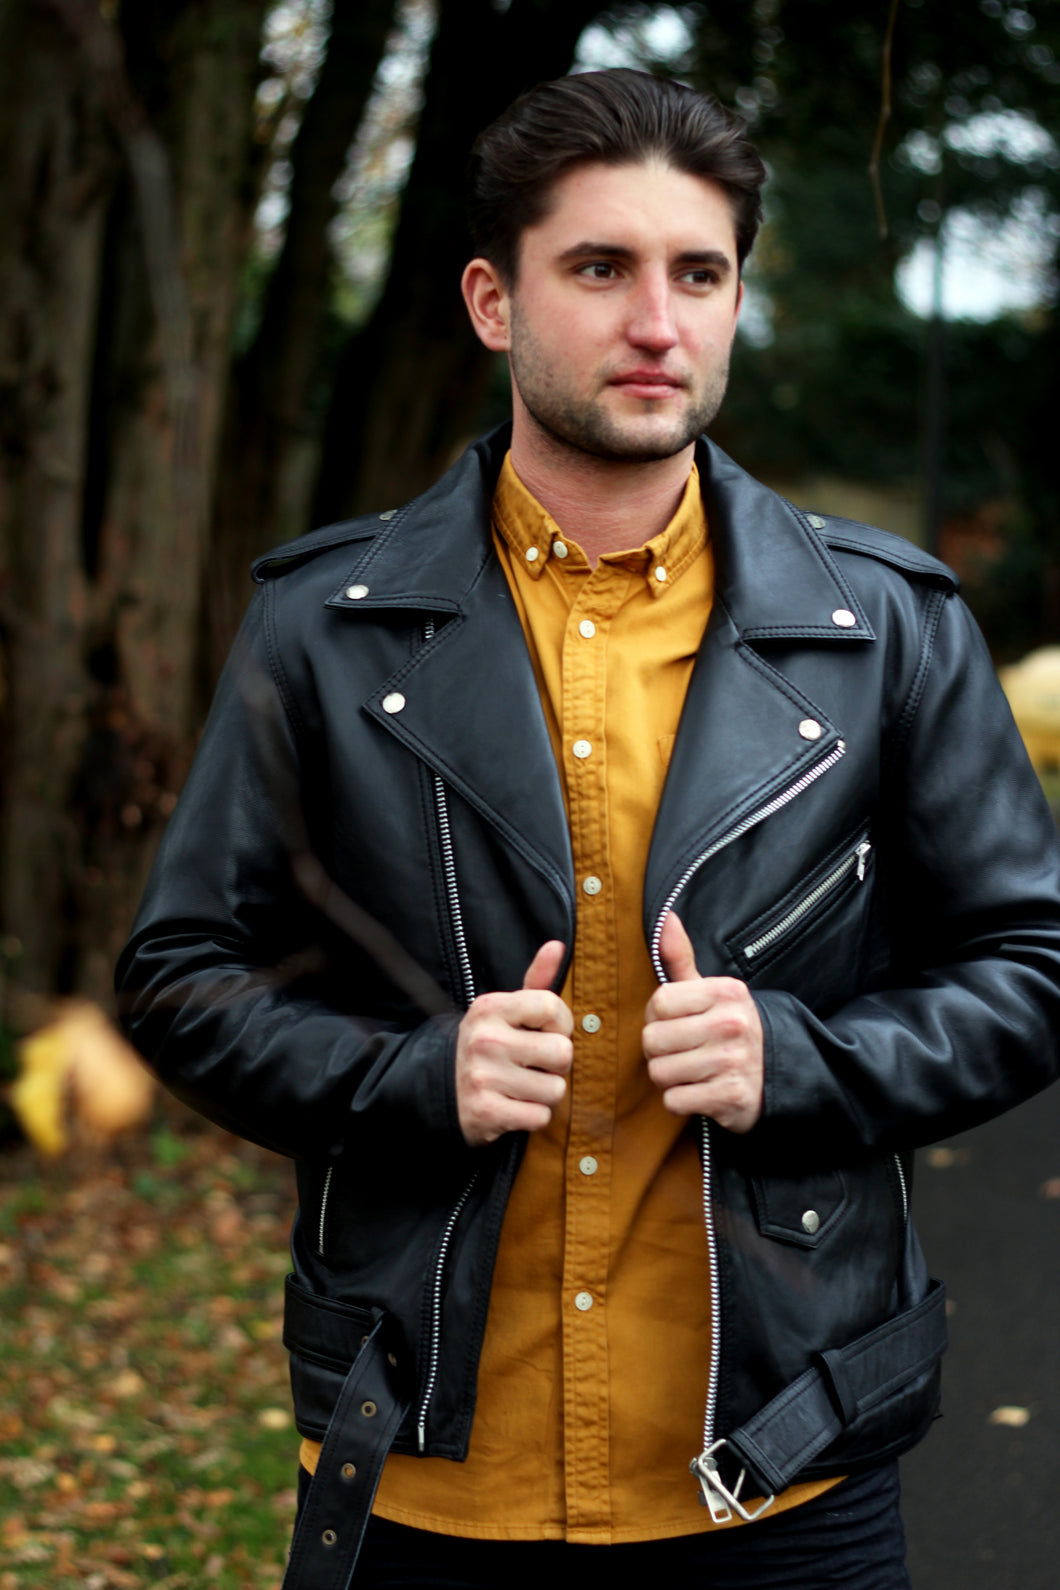 Black leather Jacket/Express delivery/Mens fashion